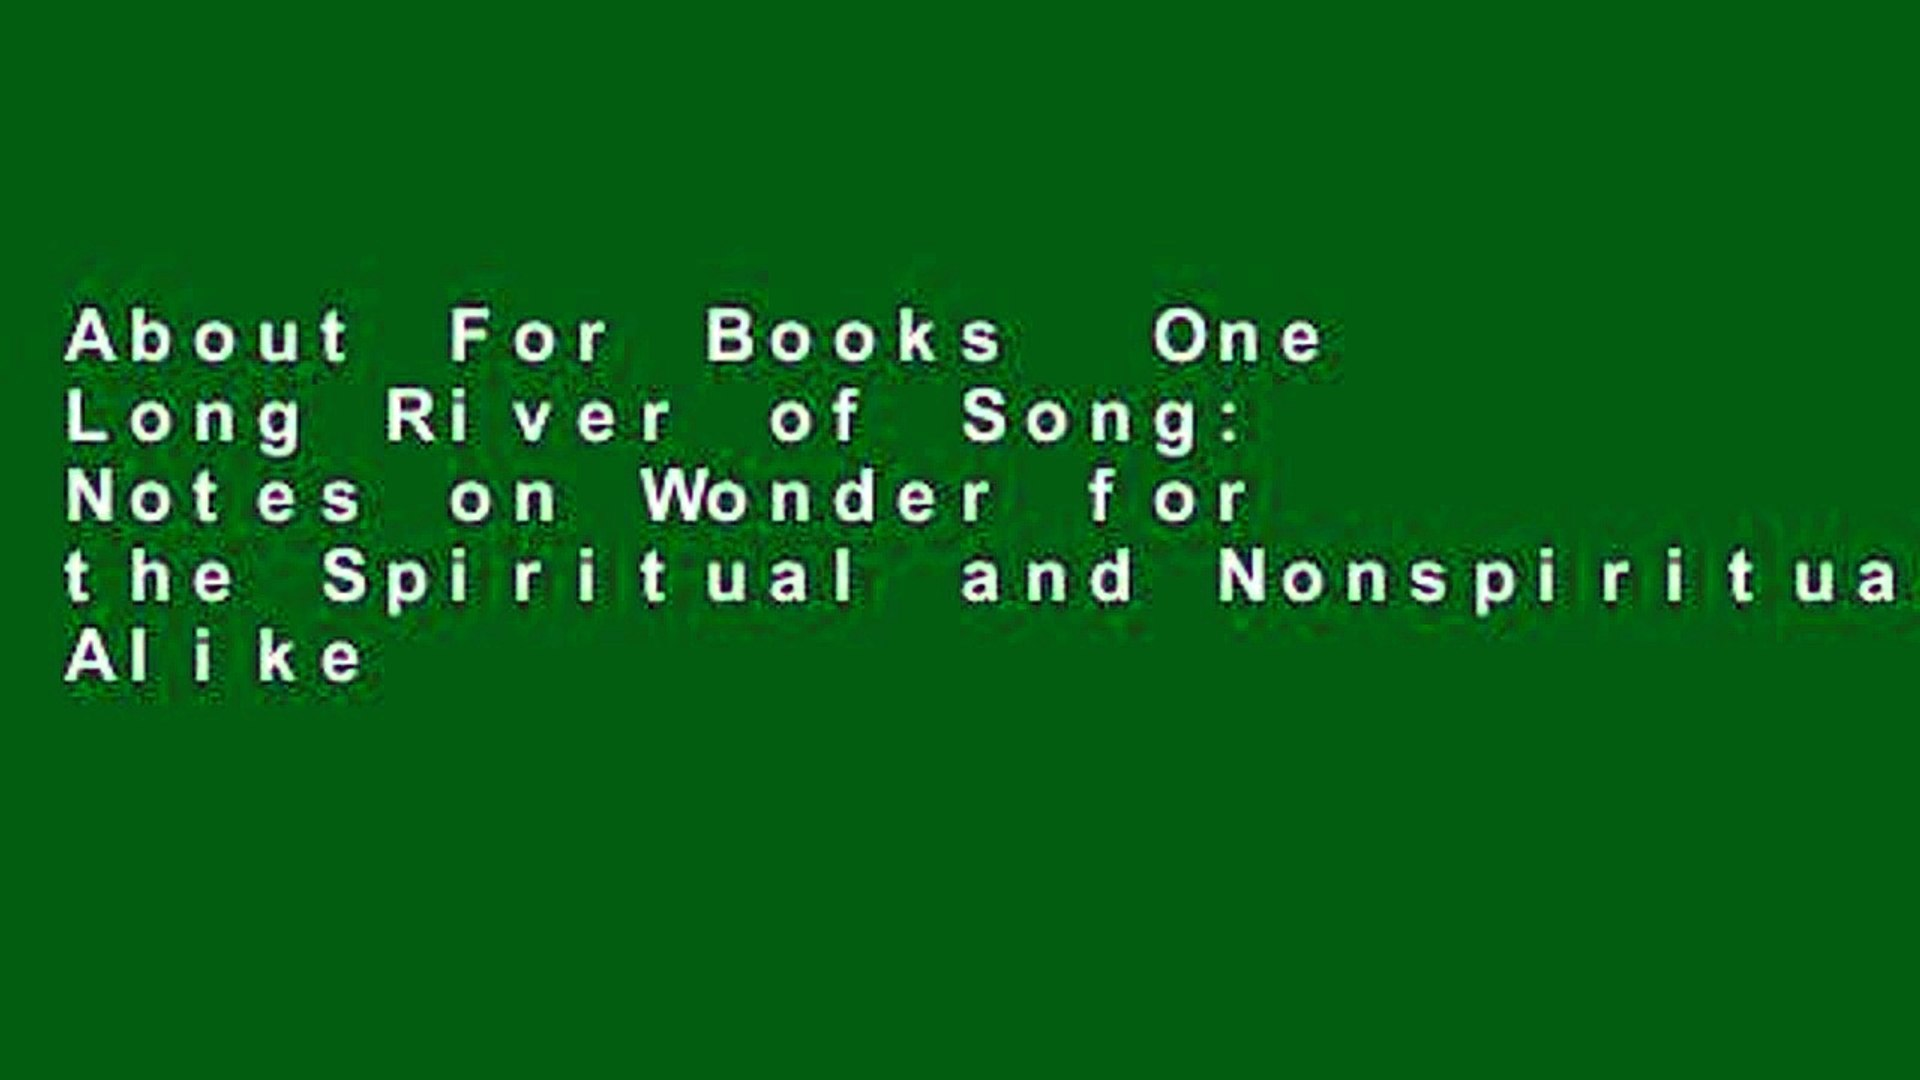 About For Books  One Long River of Song: Notes on Wonder for the Spiritual and Nonspiritual Alike